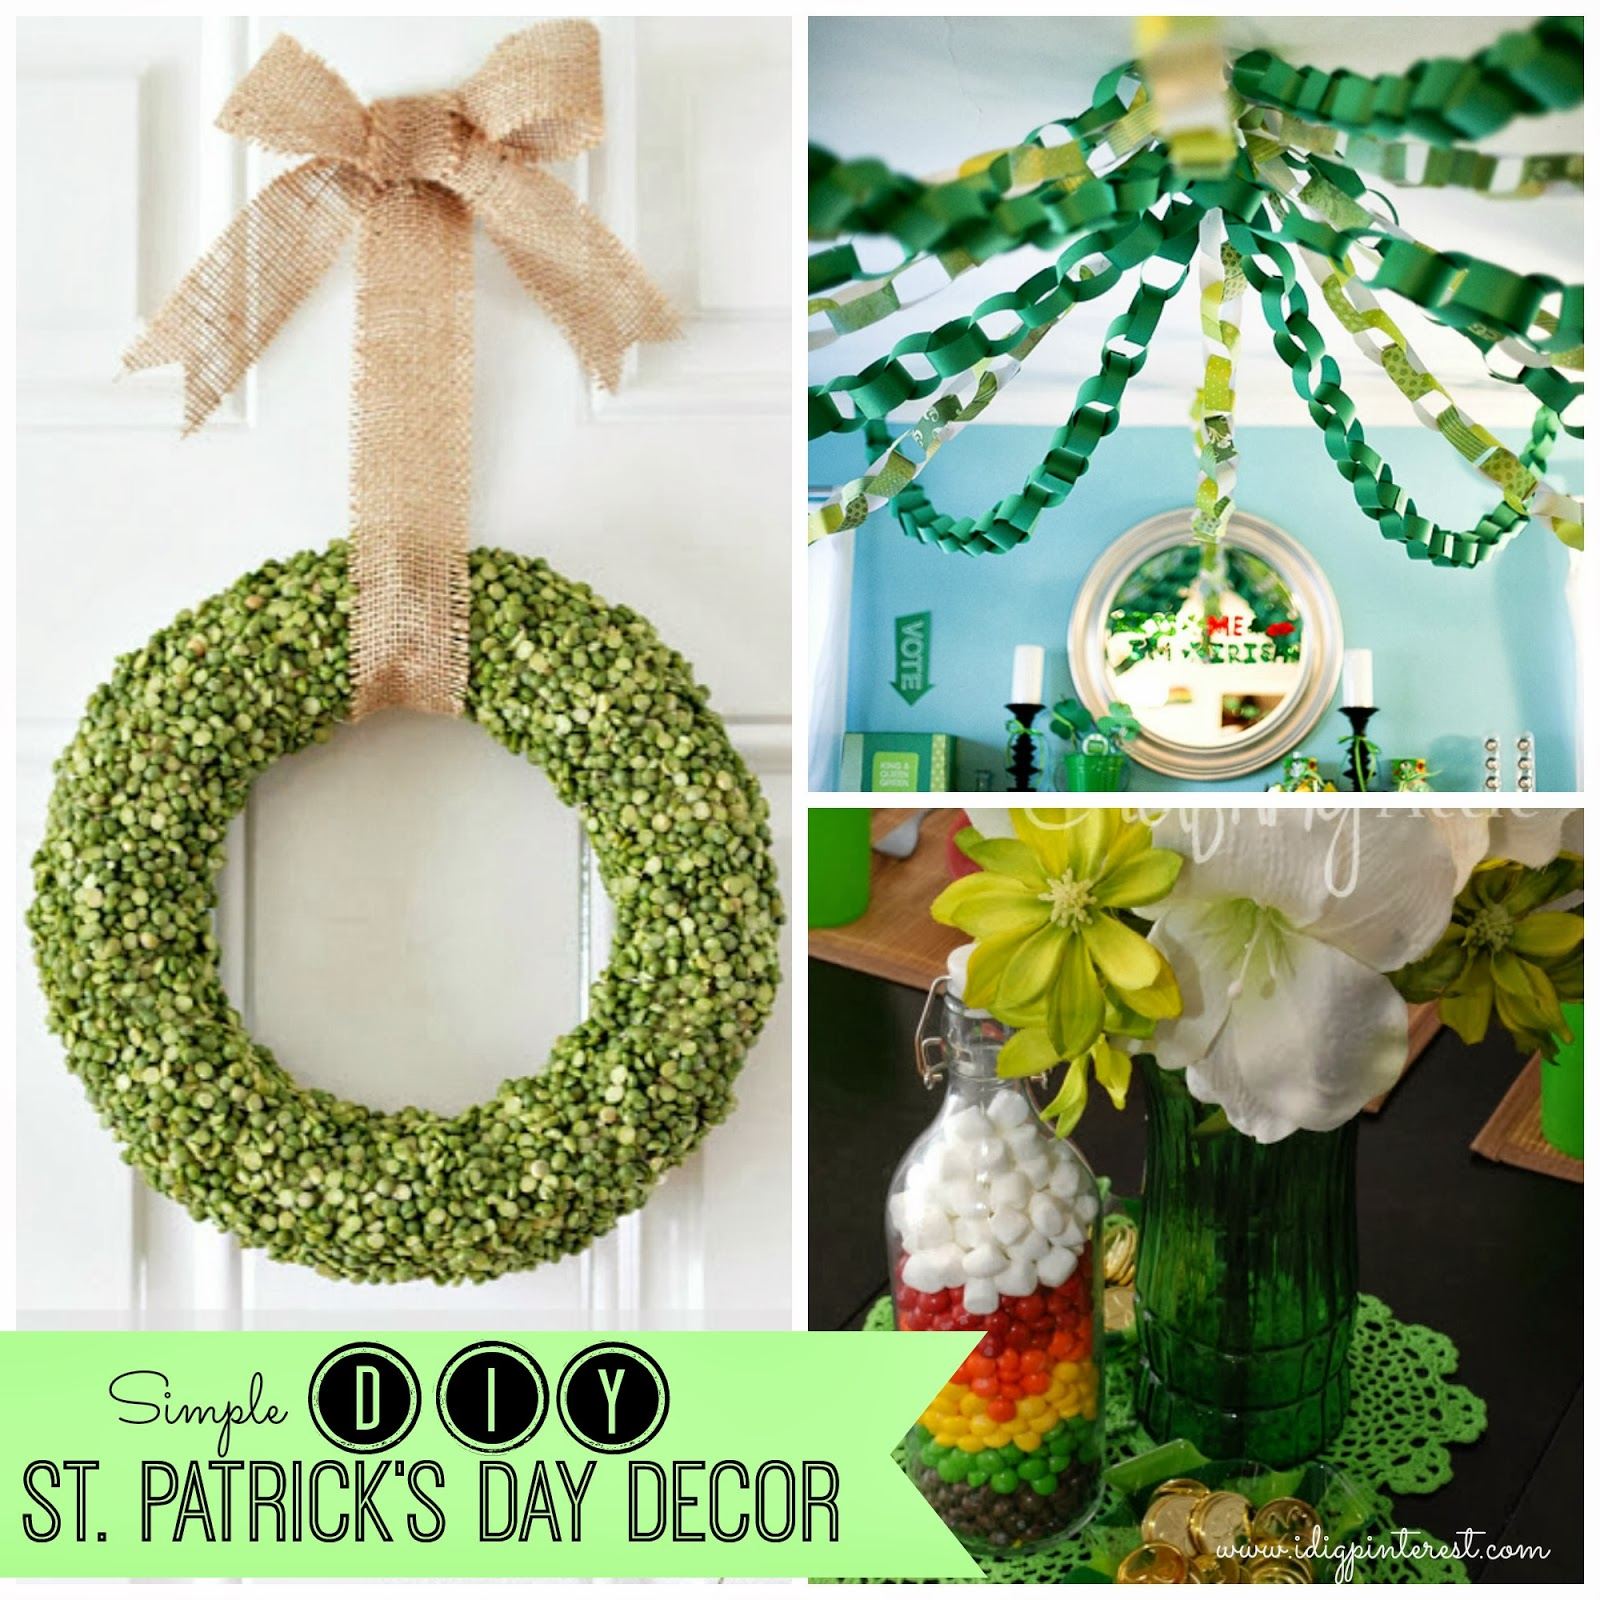 Simple Inexpensive DIY St Patricks Day Decor I Dig